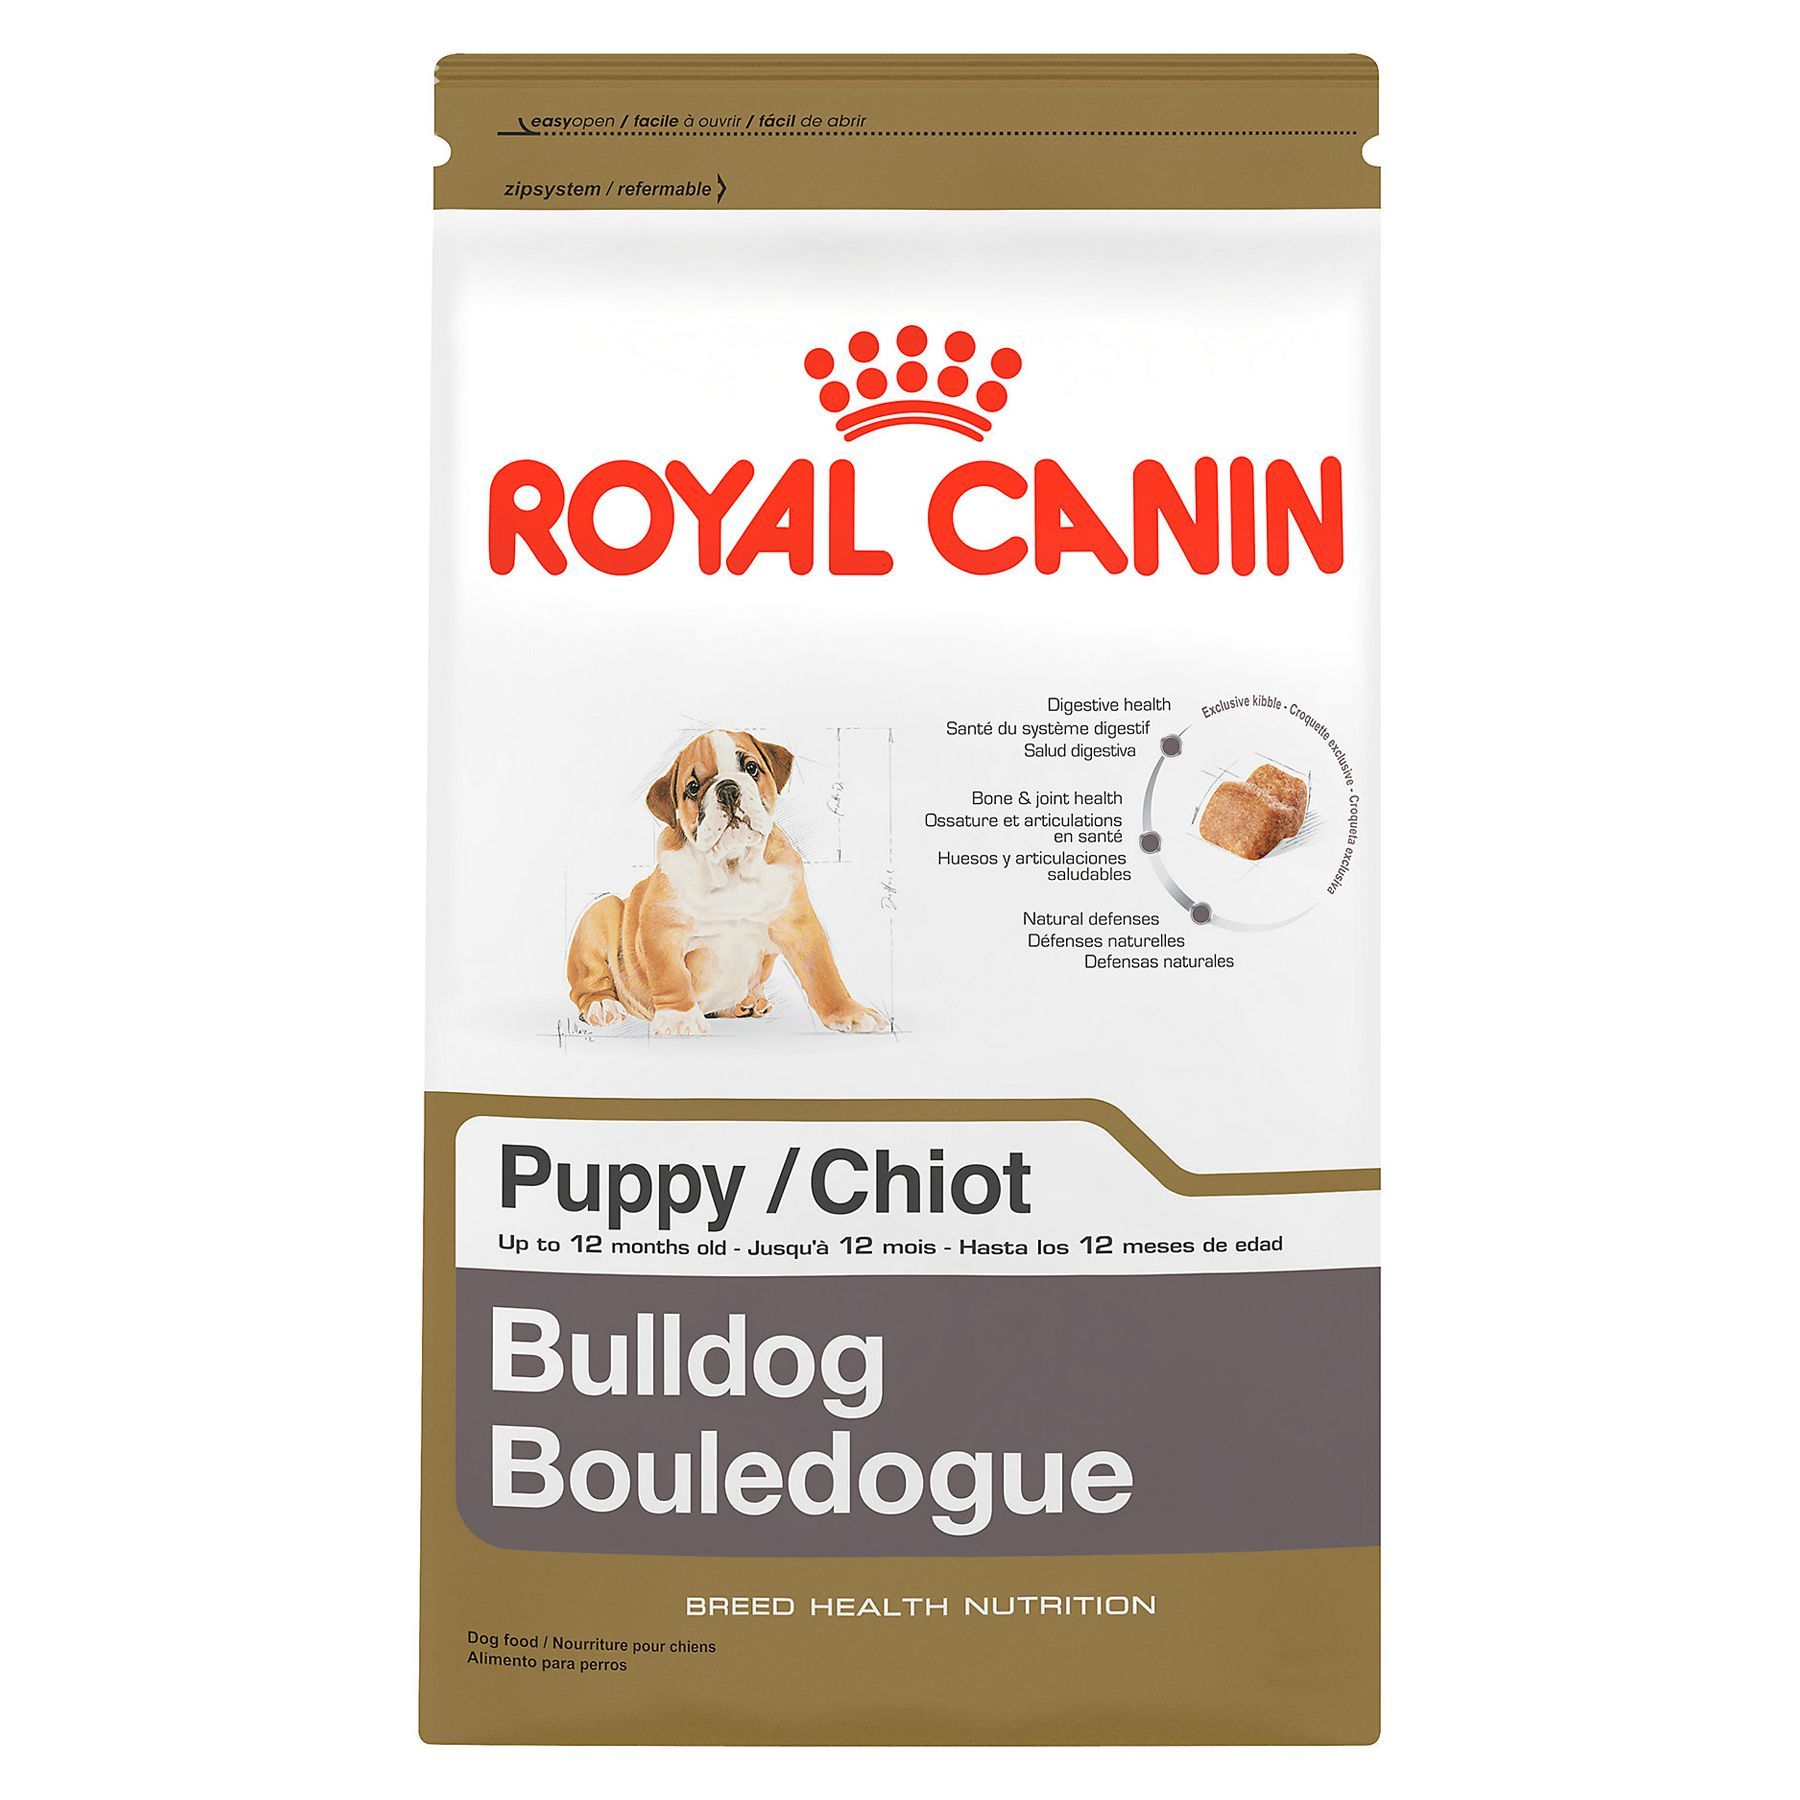 Royal Canin Breed Health Nutrition Bulldog Puppy Food In 2020